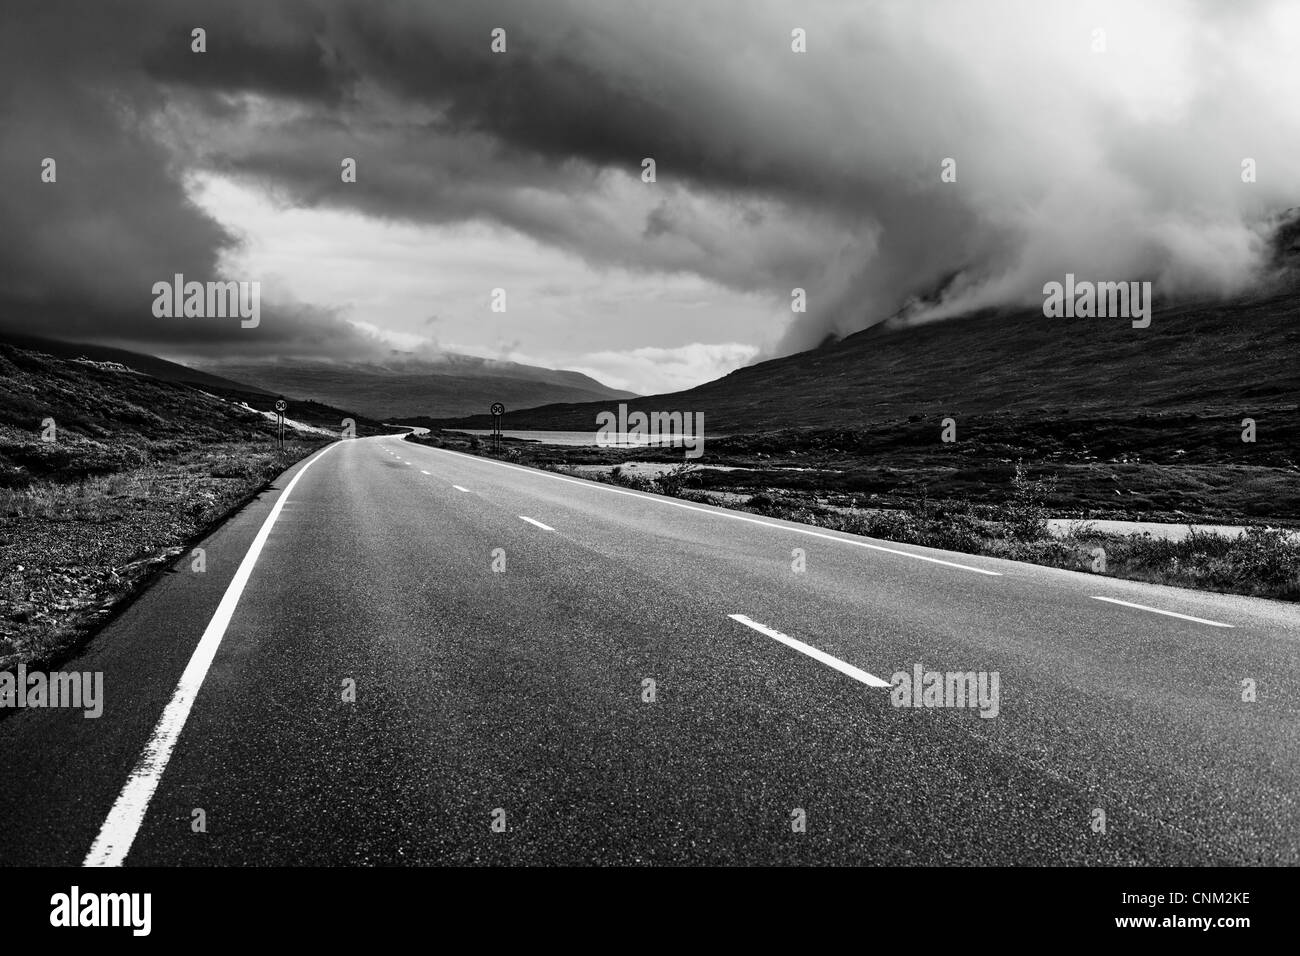 Road perspective black and white colors. Norway. - Stock Image